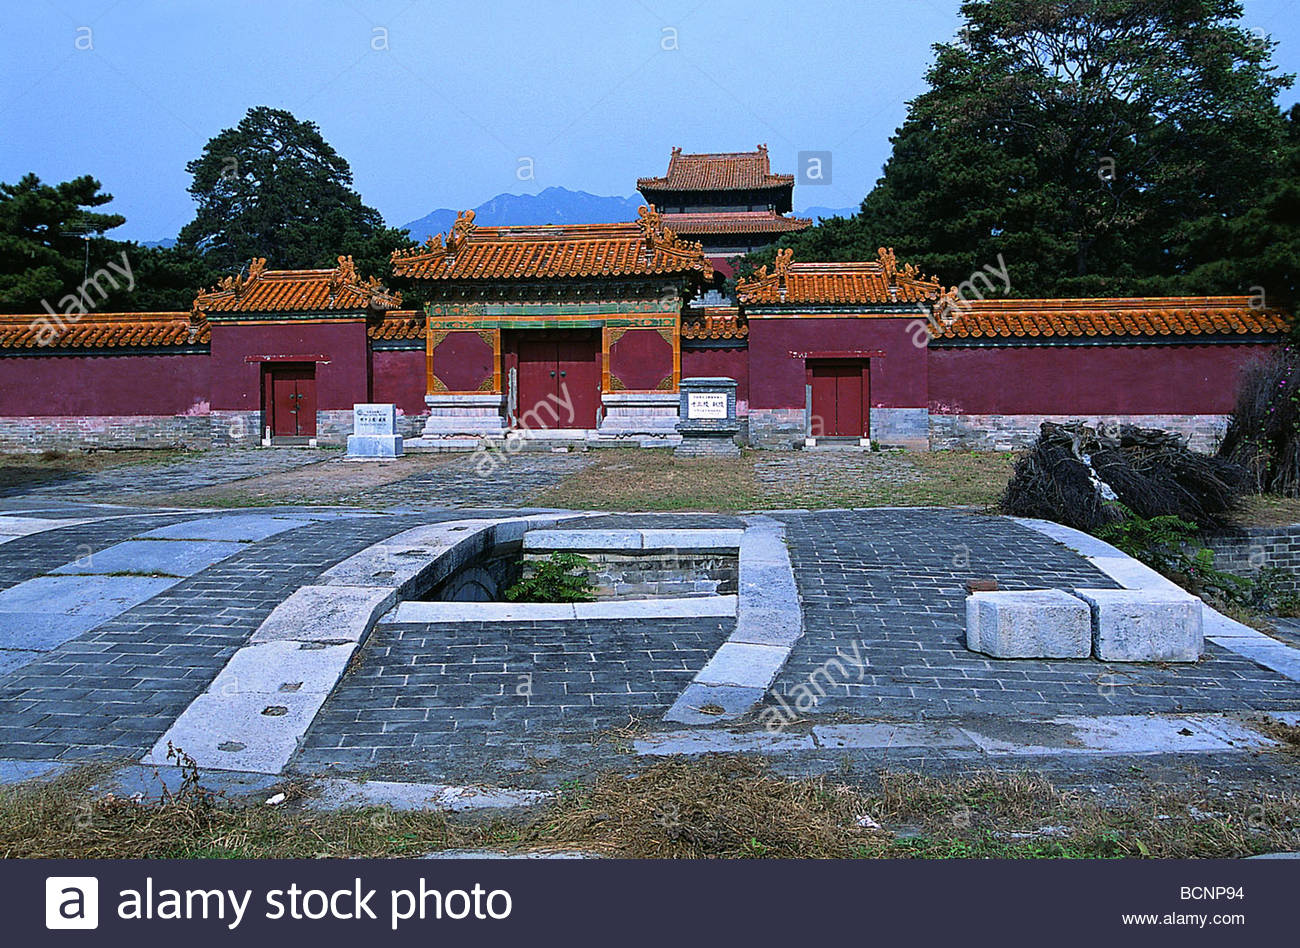 PACE Běijīng, Xian Ling in Ming Tombs, Beijing, China Stock Photo, Royalty Free ...